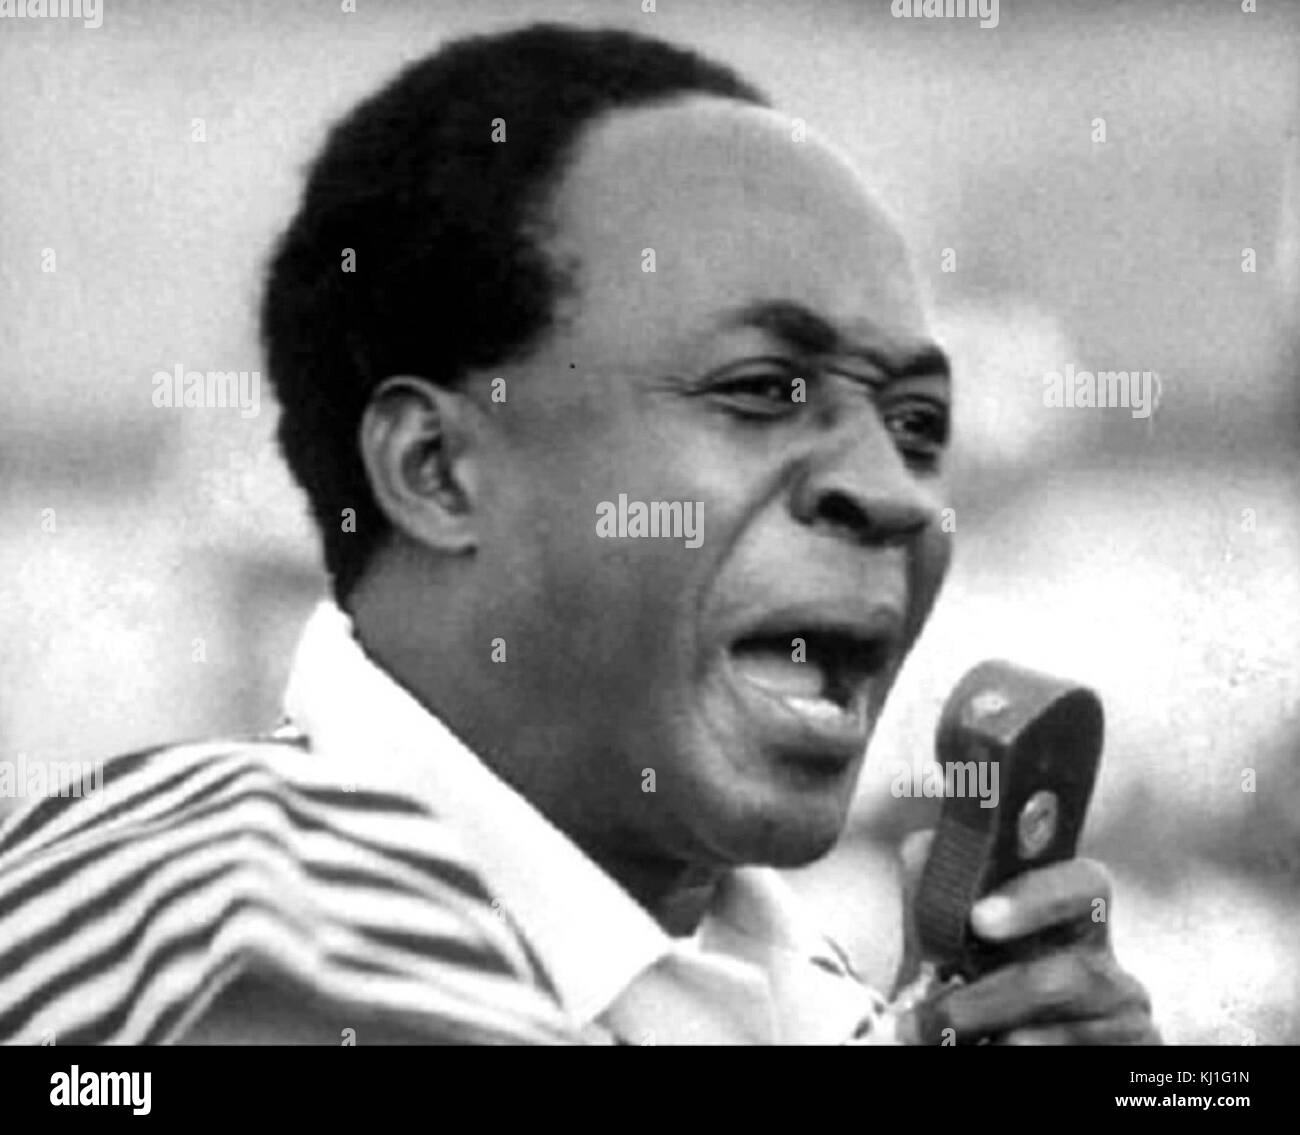 Kwame Nkrumah PC (1909 – 1972) led Ghana to independence from Britain in 1957 and served as its first prime minister - Stock Image